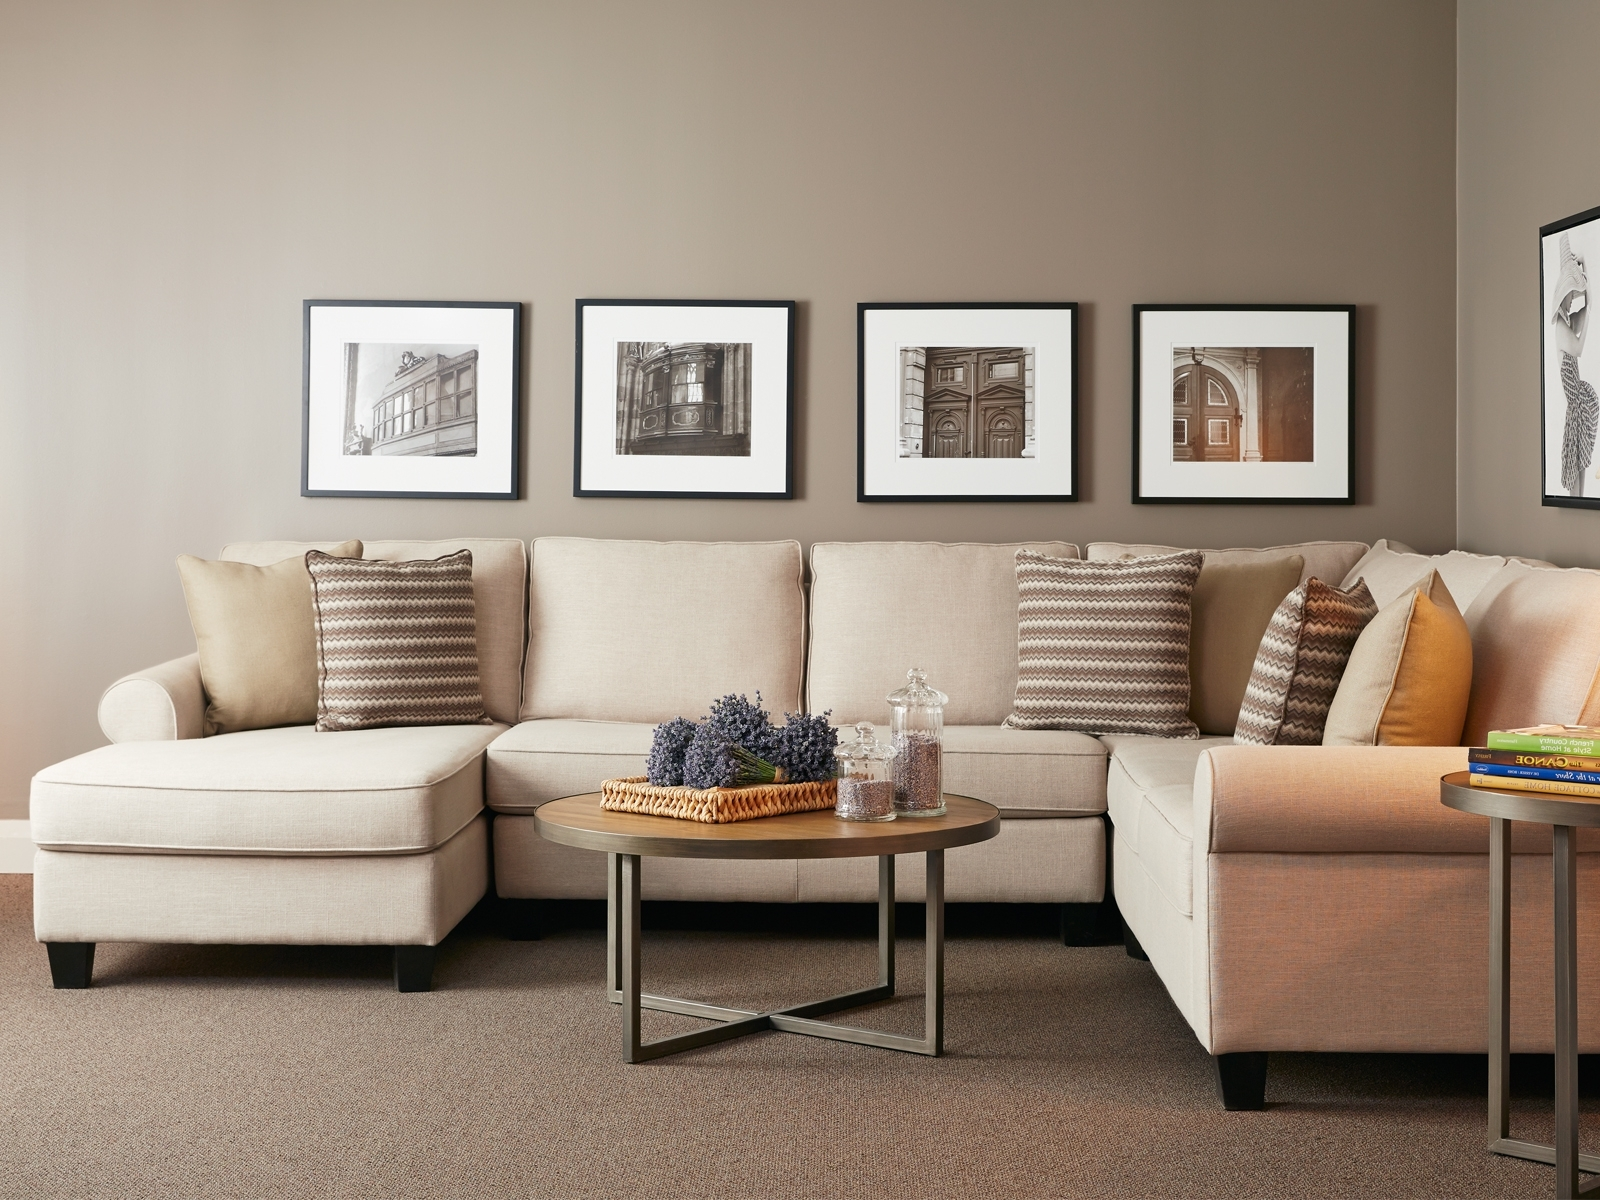 Brentwood Classics With Regard To Ontario Canada Sectional Sofas (View 1 of 20)